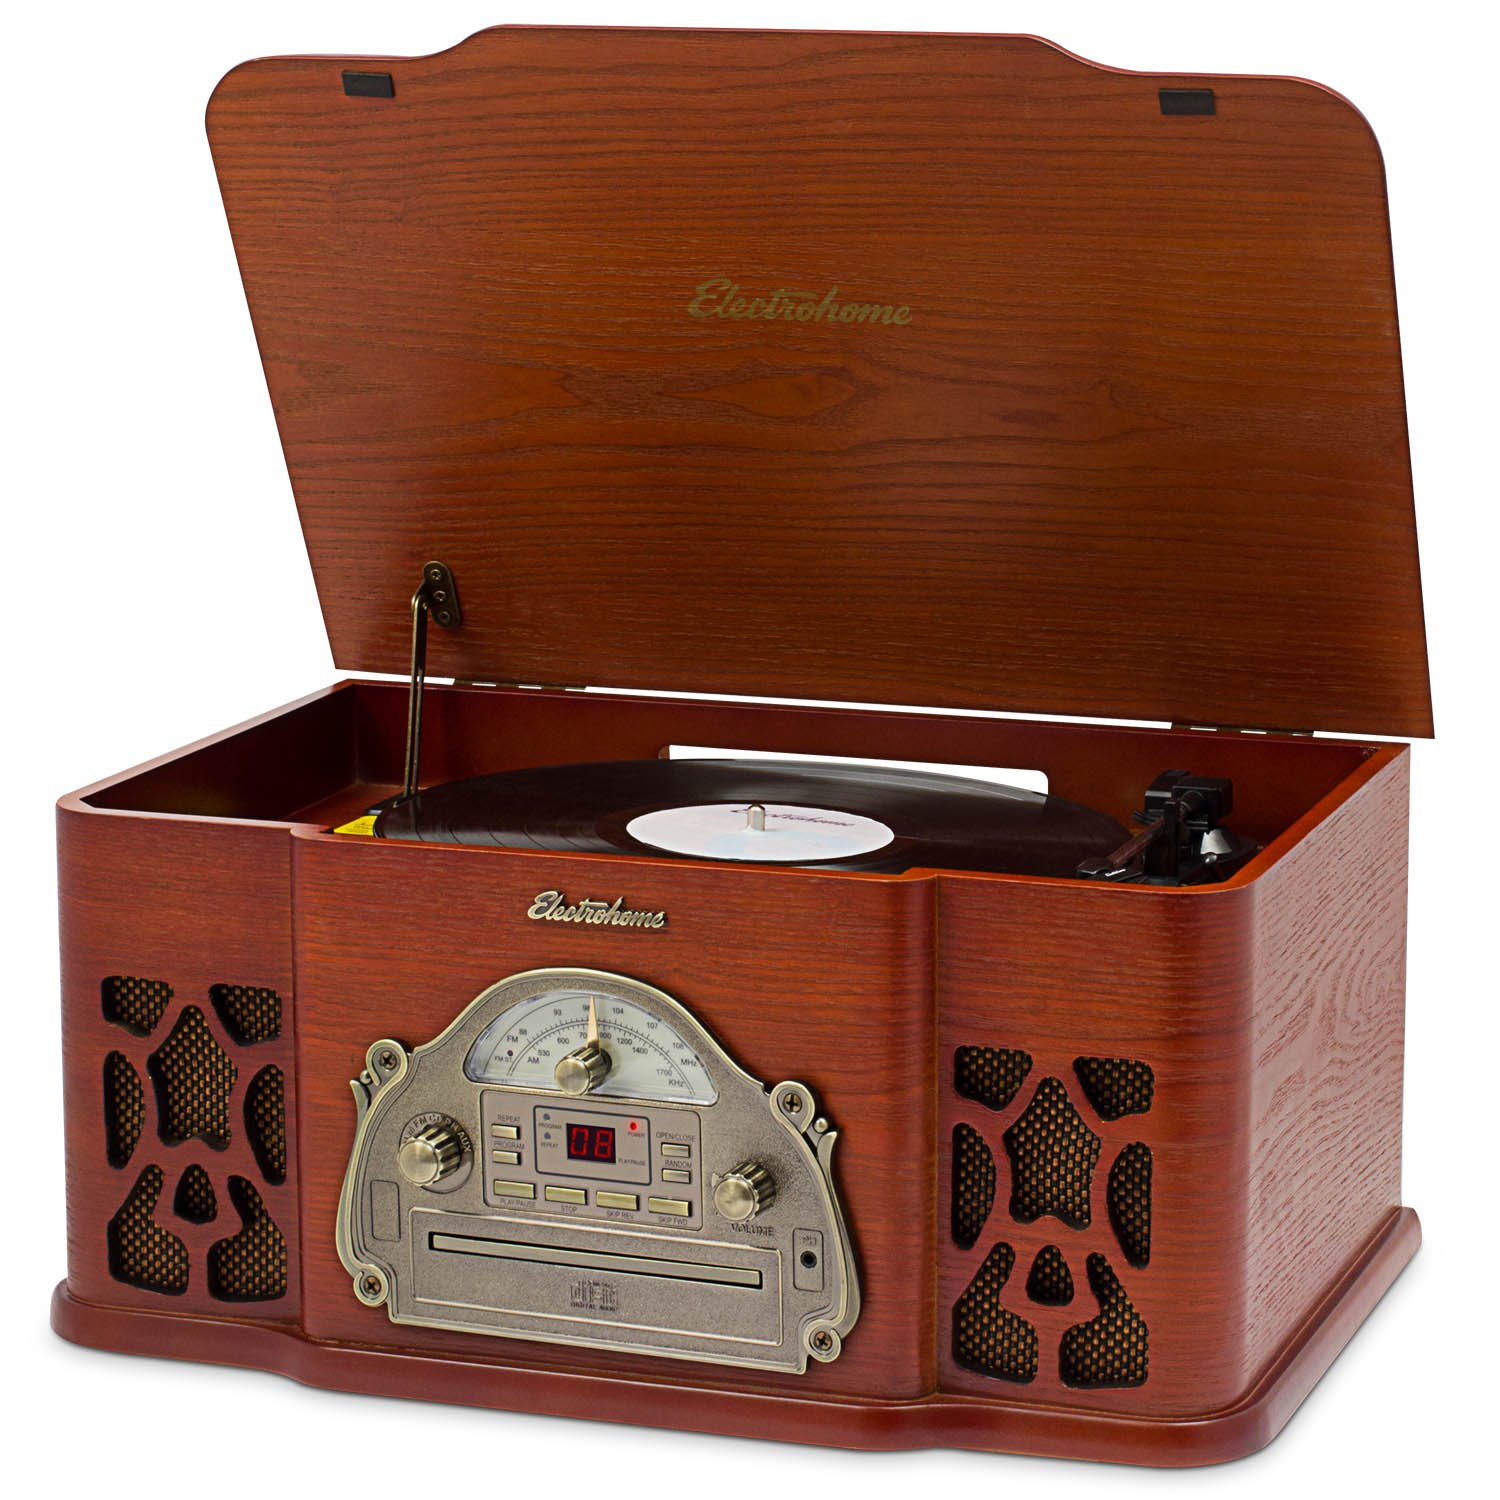 Electrohome Winston Vinyl Record Player 3-in-1 Classic Turntable Natural Wood Stereo System, AM/FM Radio, CD, and AUX Input for Smartphones, Tablets, and MP3 players (EANOS501) by Electrohome